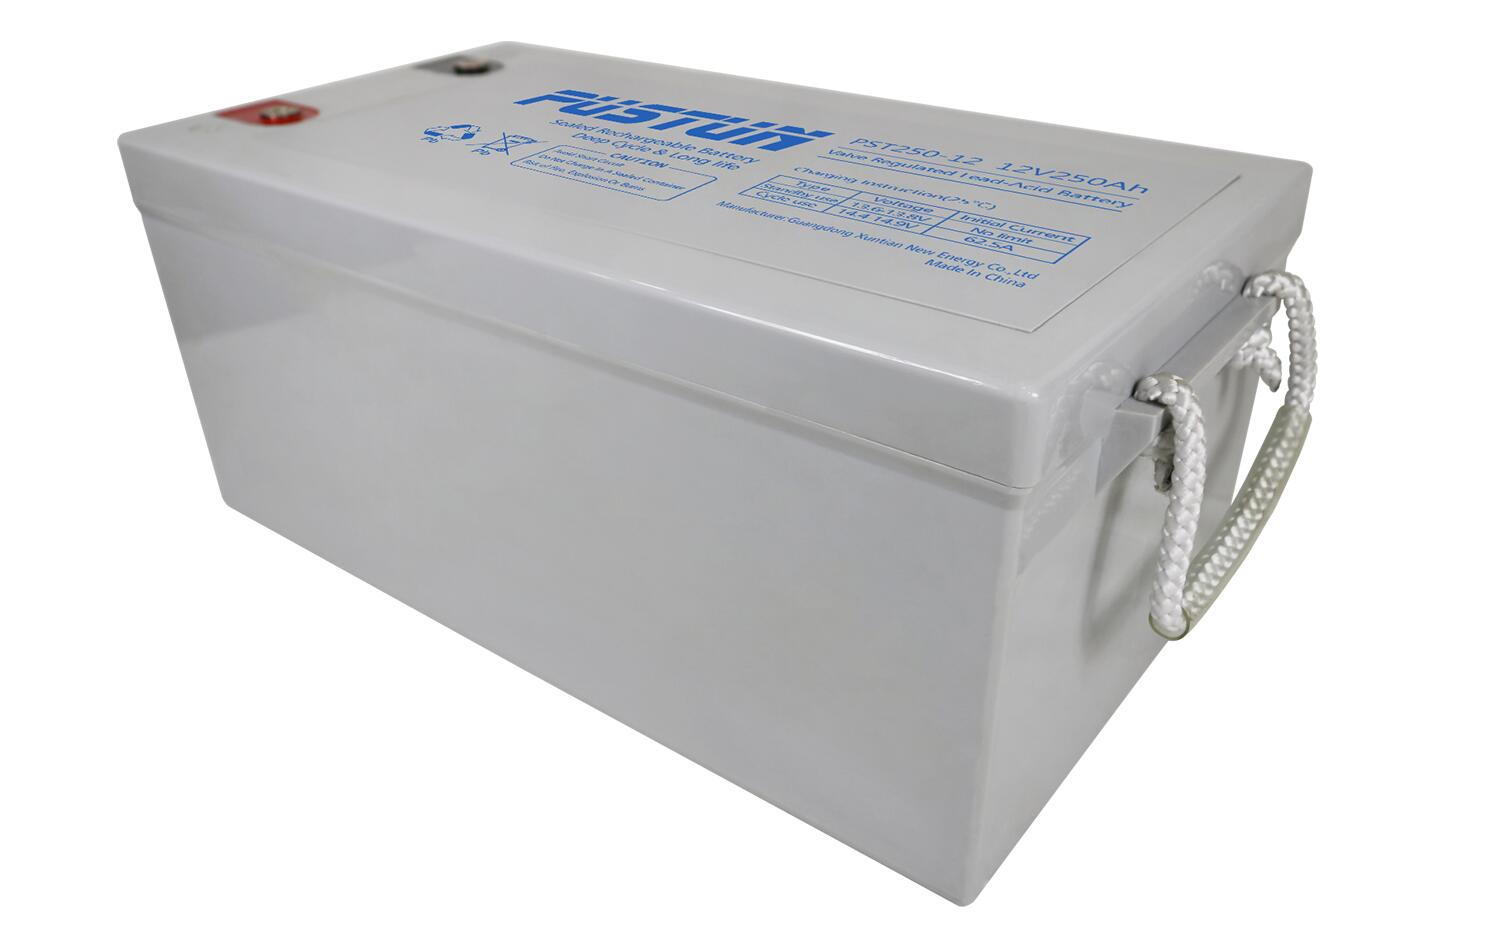 agm deep cycle battery